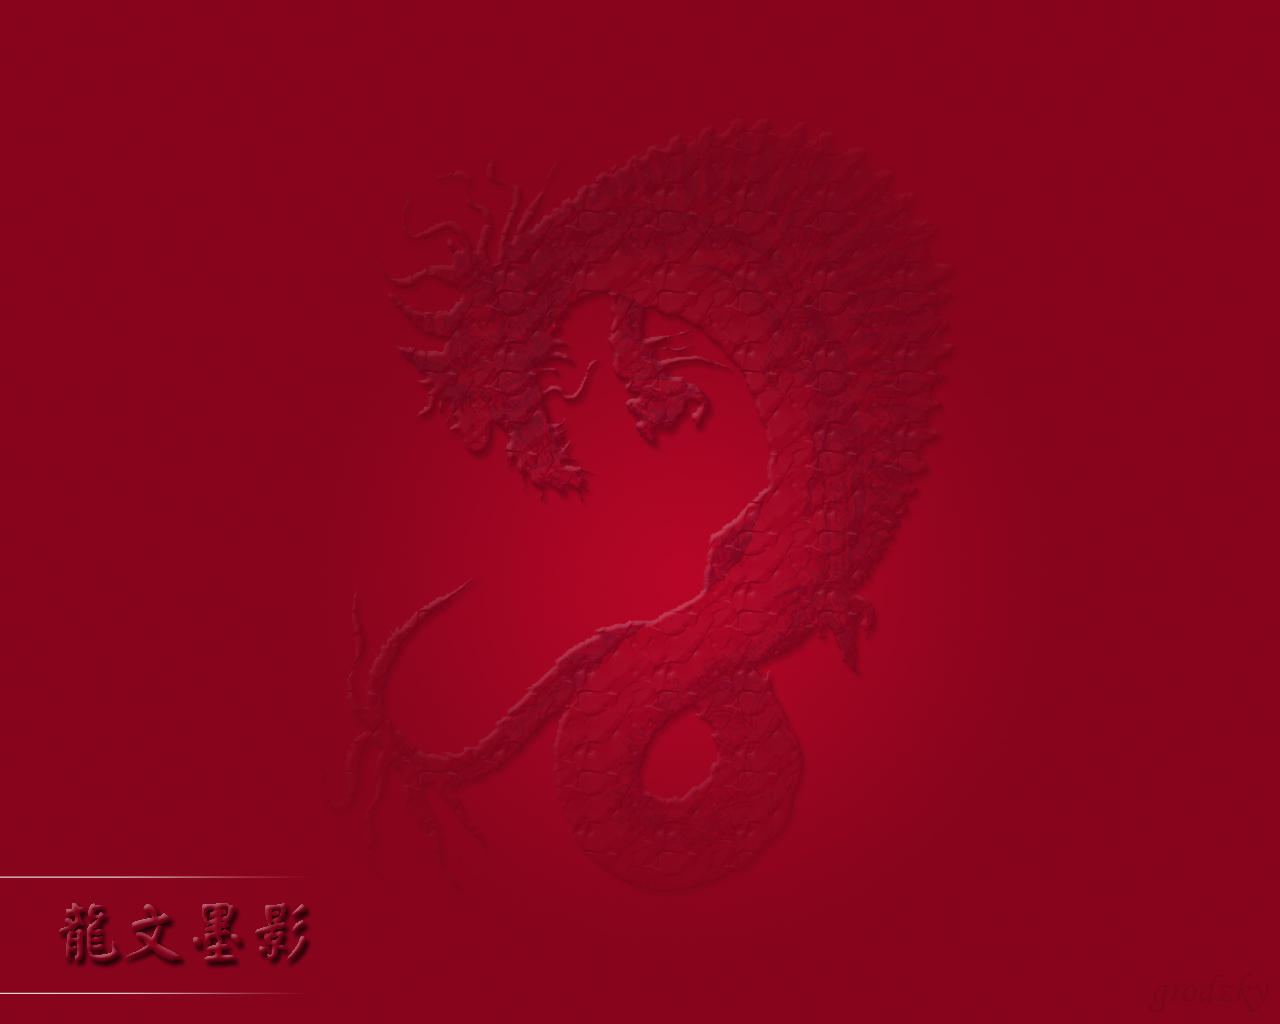 red chinese dragon by grodzky customization wallpaper fantasy 2006    Red Chinese Dragon Wallpaper